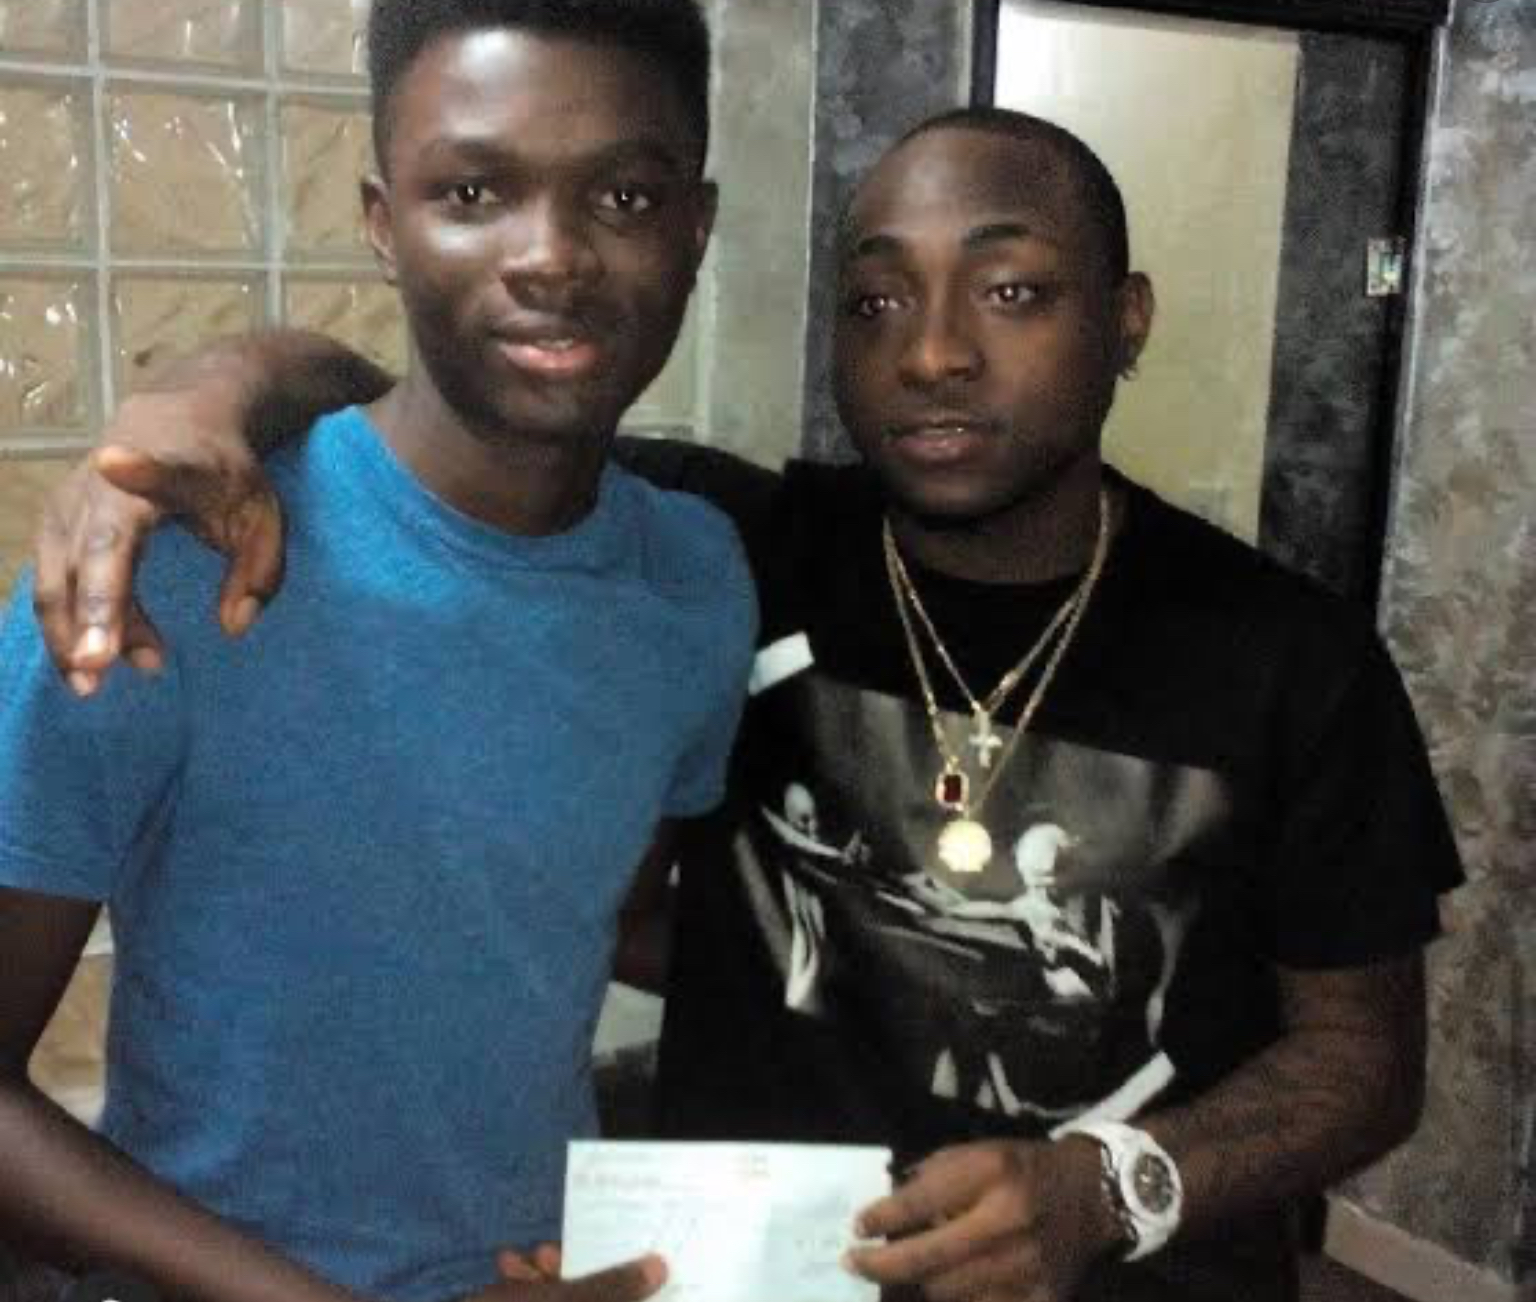 Man Praises Davido For Funding His Education After He Dropped Out Of School